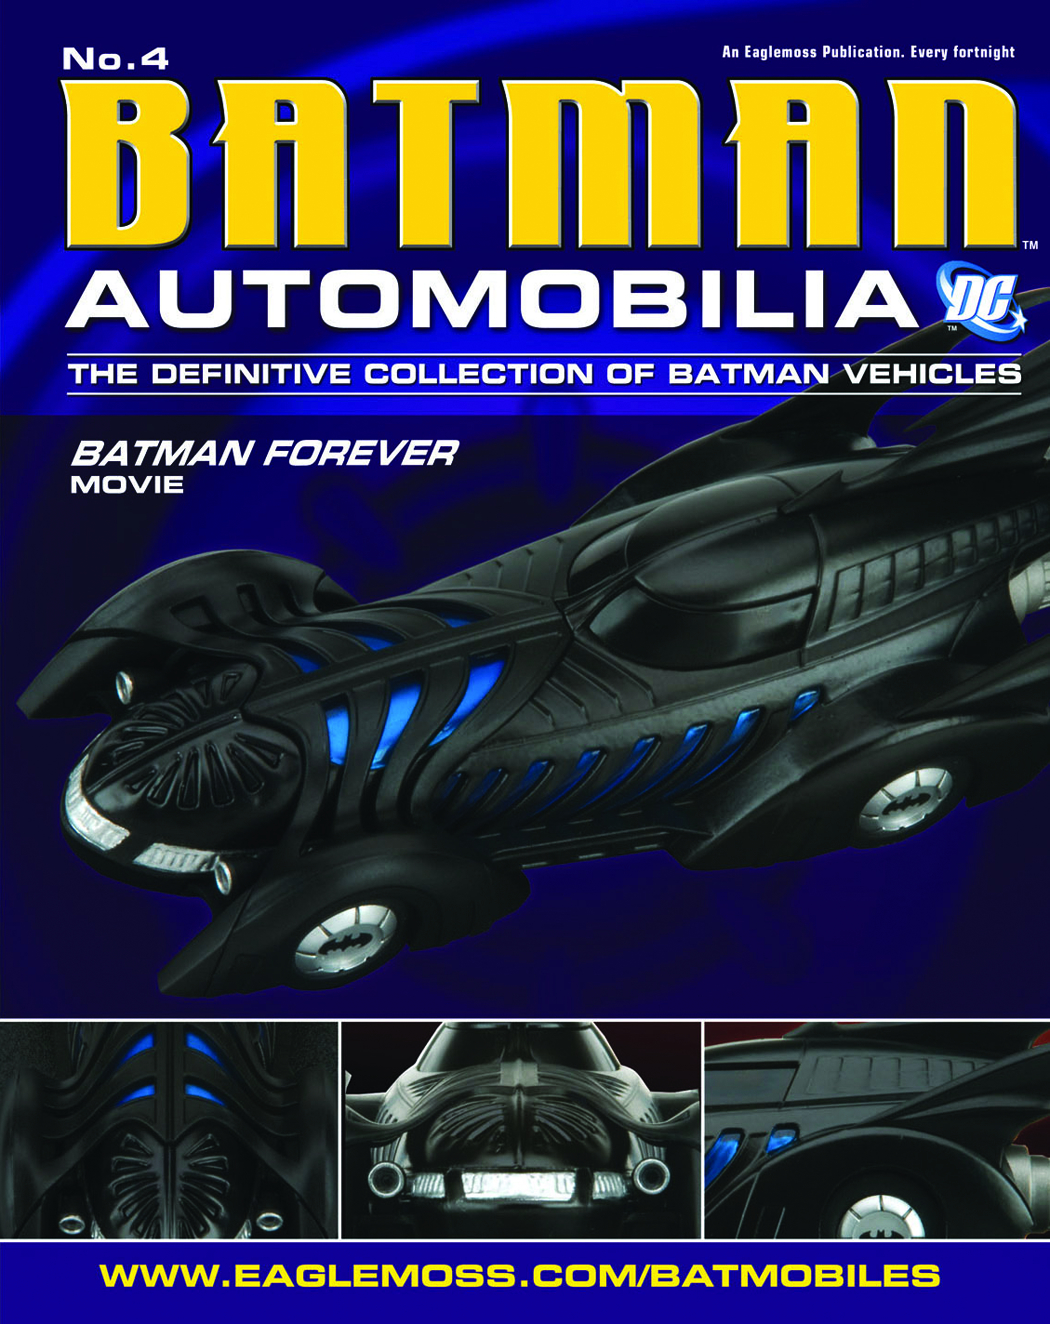 DC BATMAN AUTO FIG MAG #4 BATMAN FOREVER MOVIE BATMOBILE